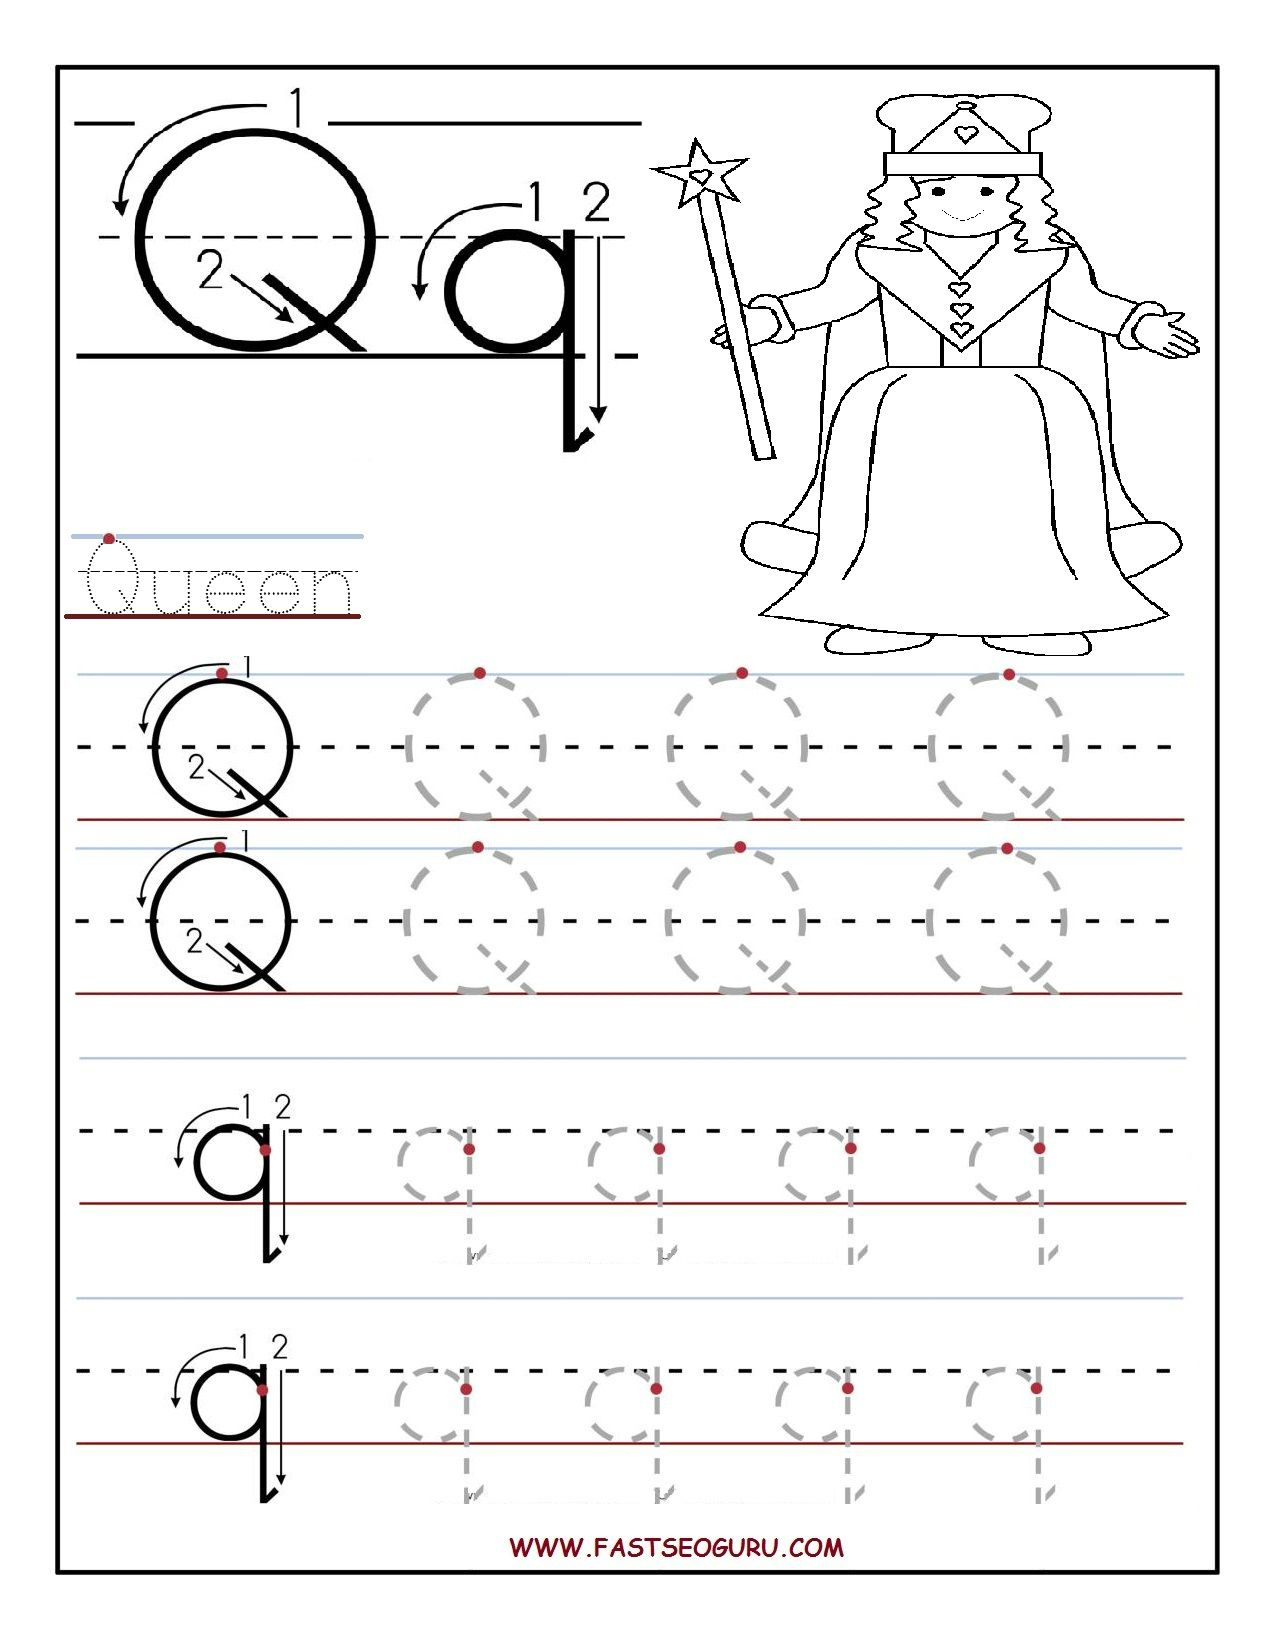 Printable Letter Q Tracing Worksheets For Preschool throughout Letter O Tracing Page